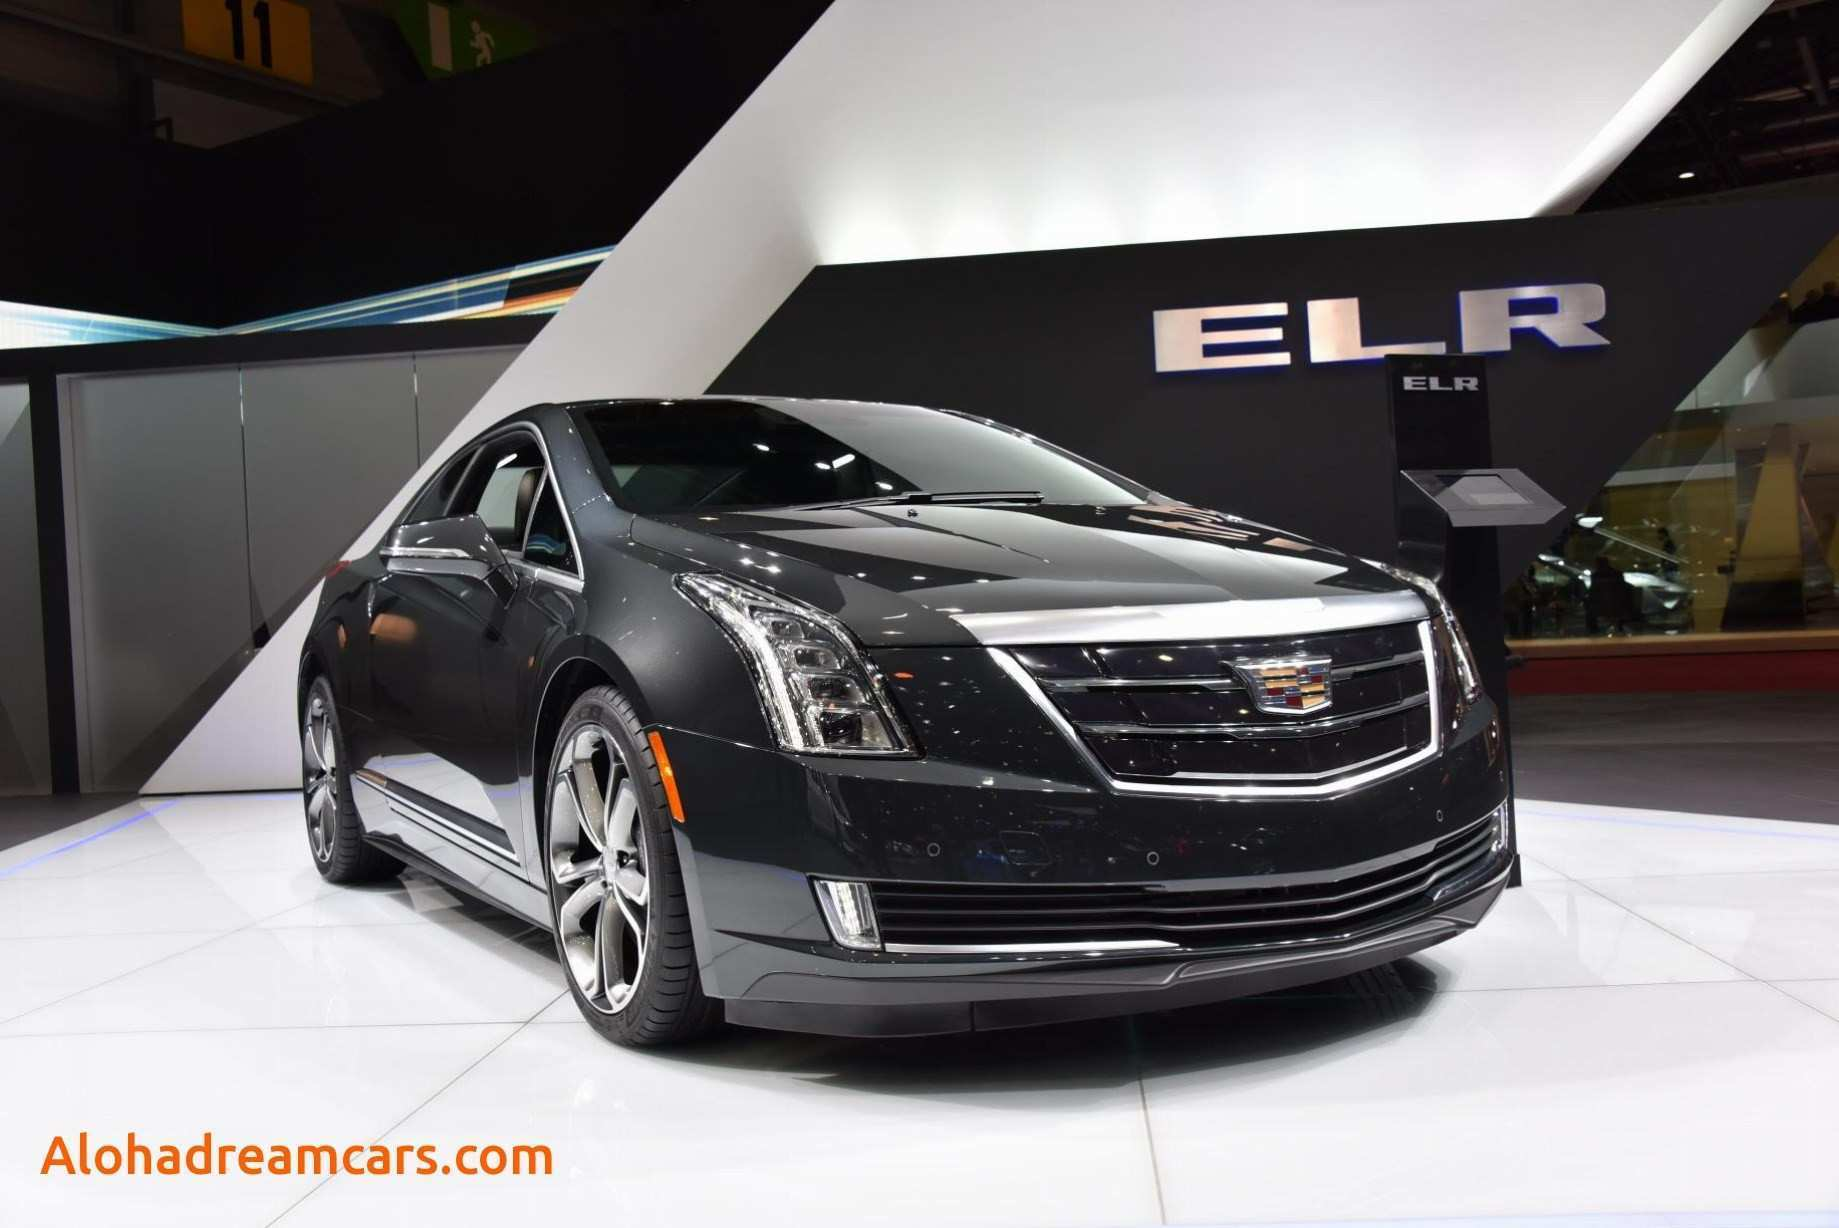 13 New 2019 Cadillac ELR Redesign And Review